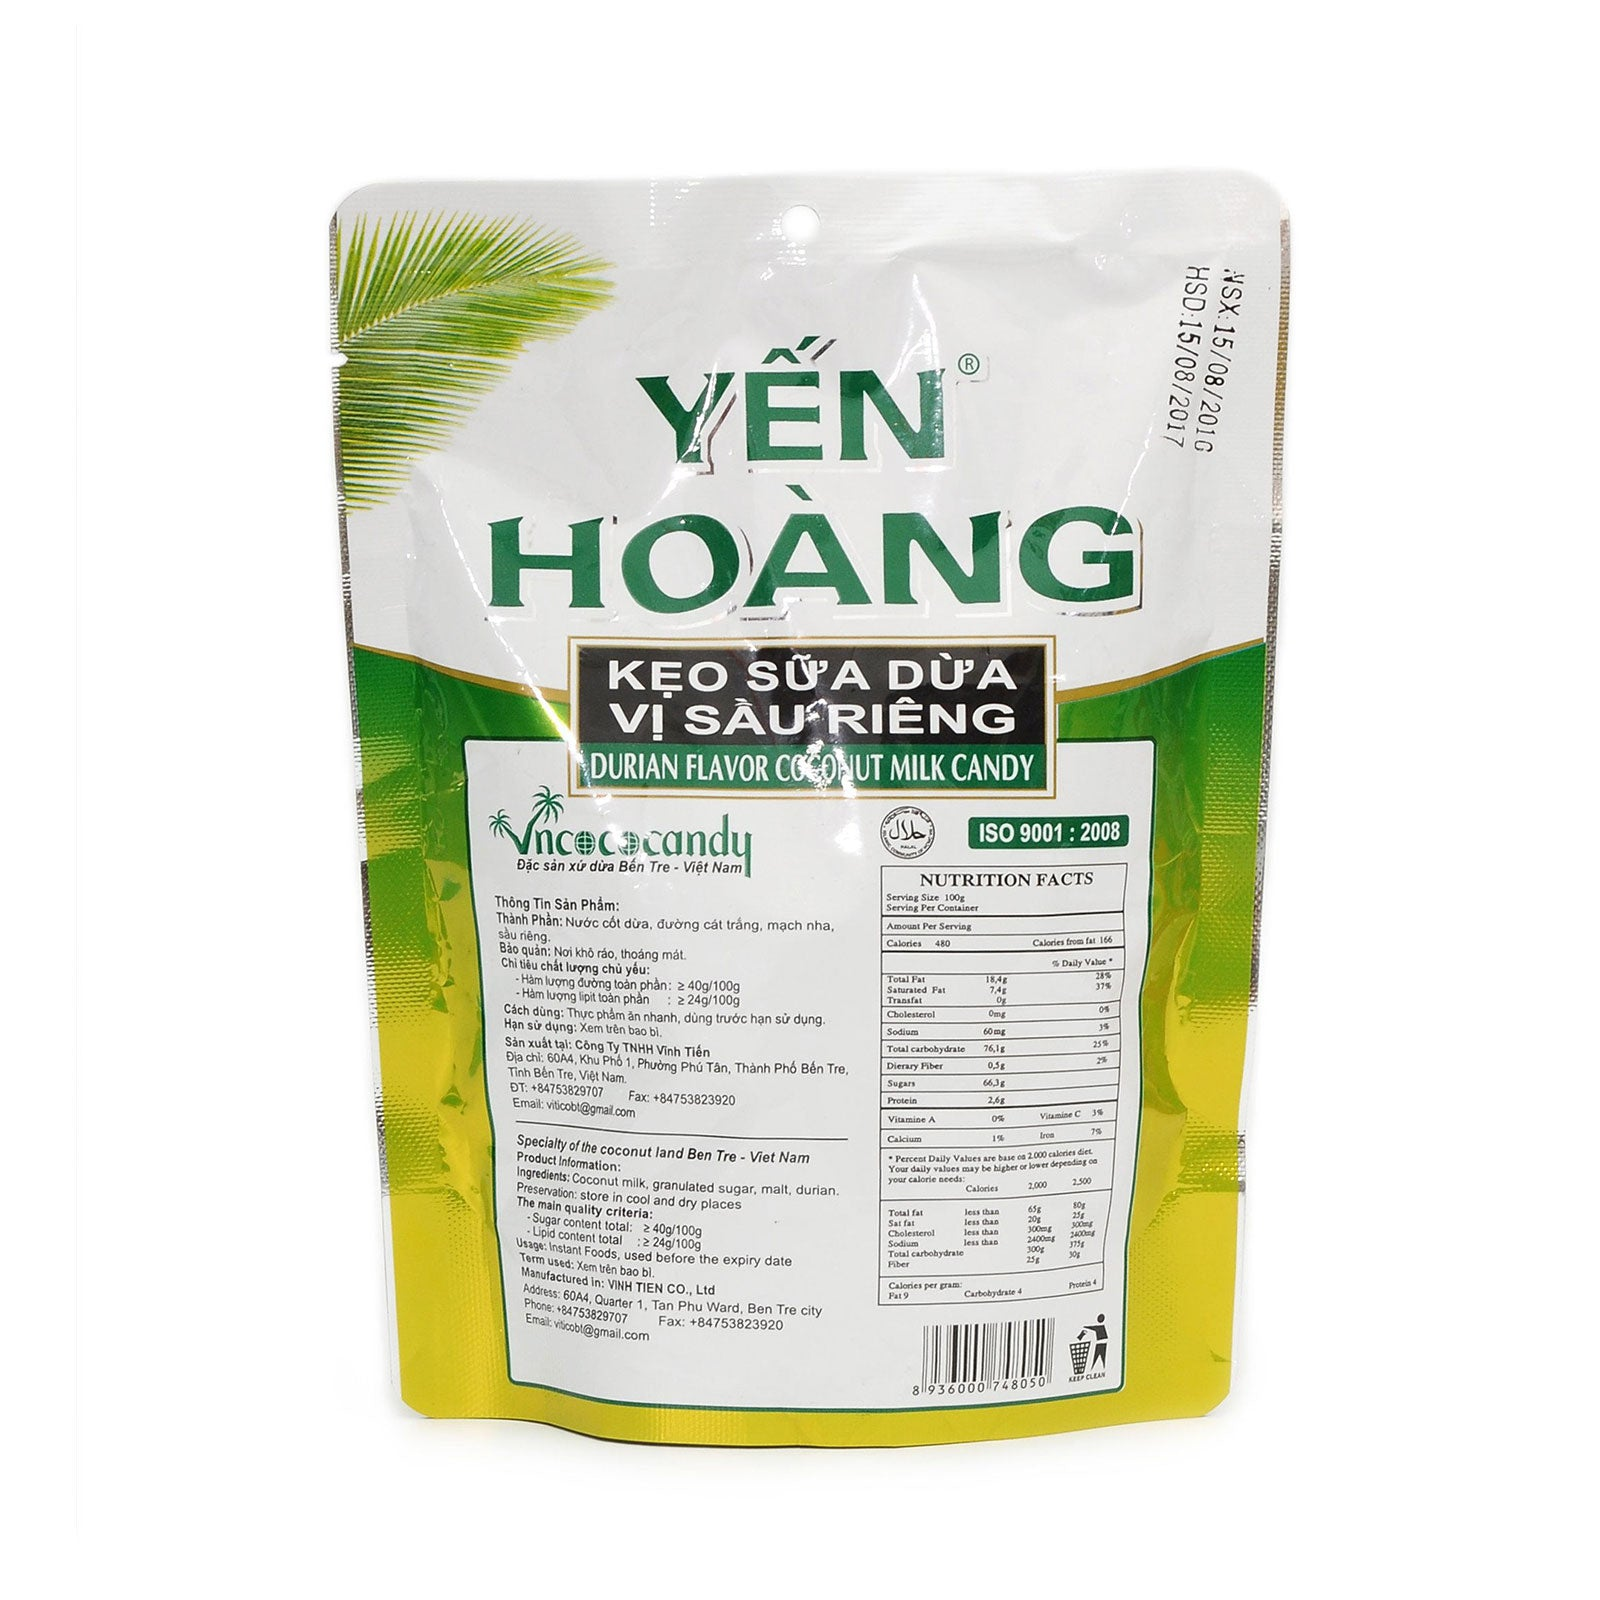 Yen Hoang Coconut Milk Candy Durian, Coffee Made in Vietnam 3 Flavors 32 pieces